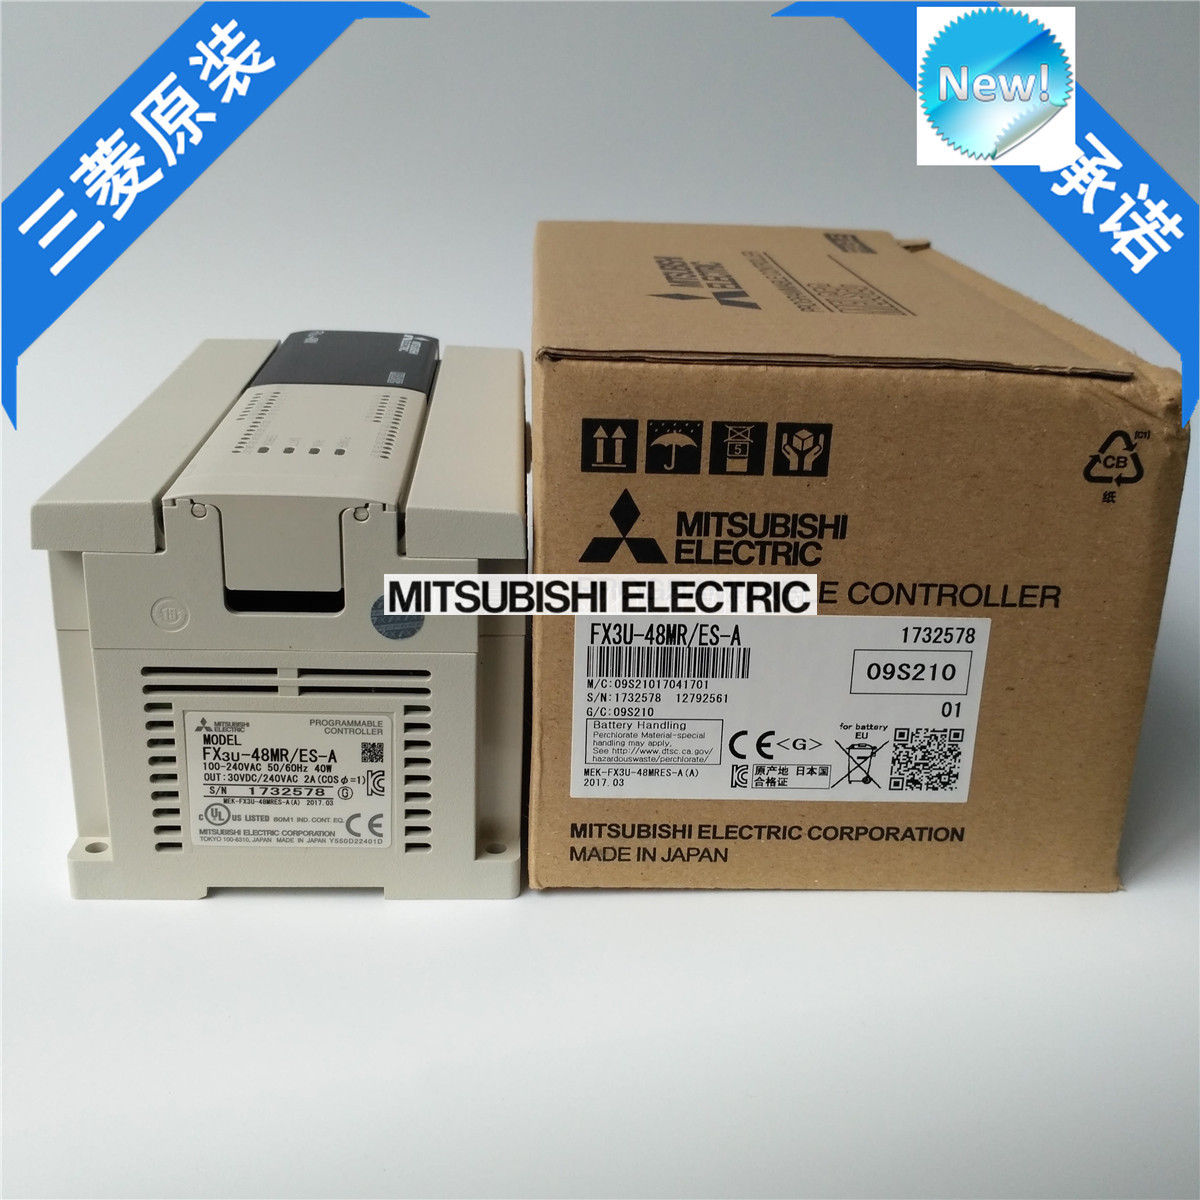 New Mitsubishi PLC FX3U-48MR/ES-A In Box FX3U48MRESA